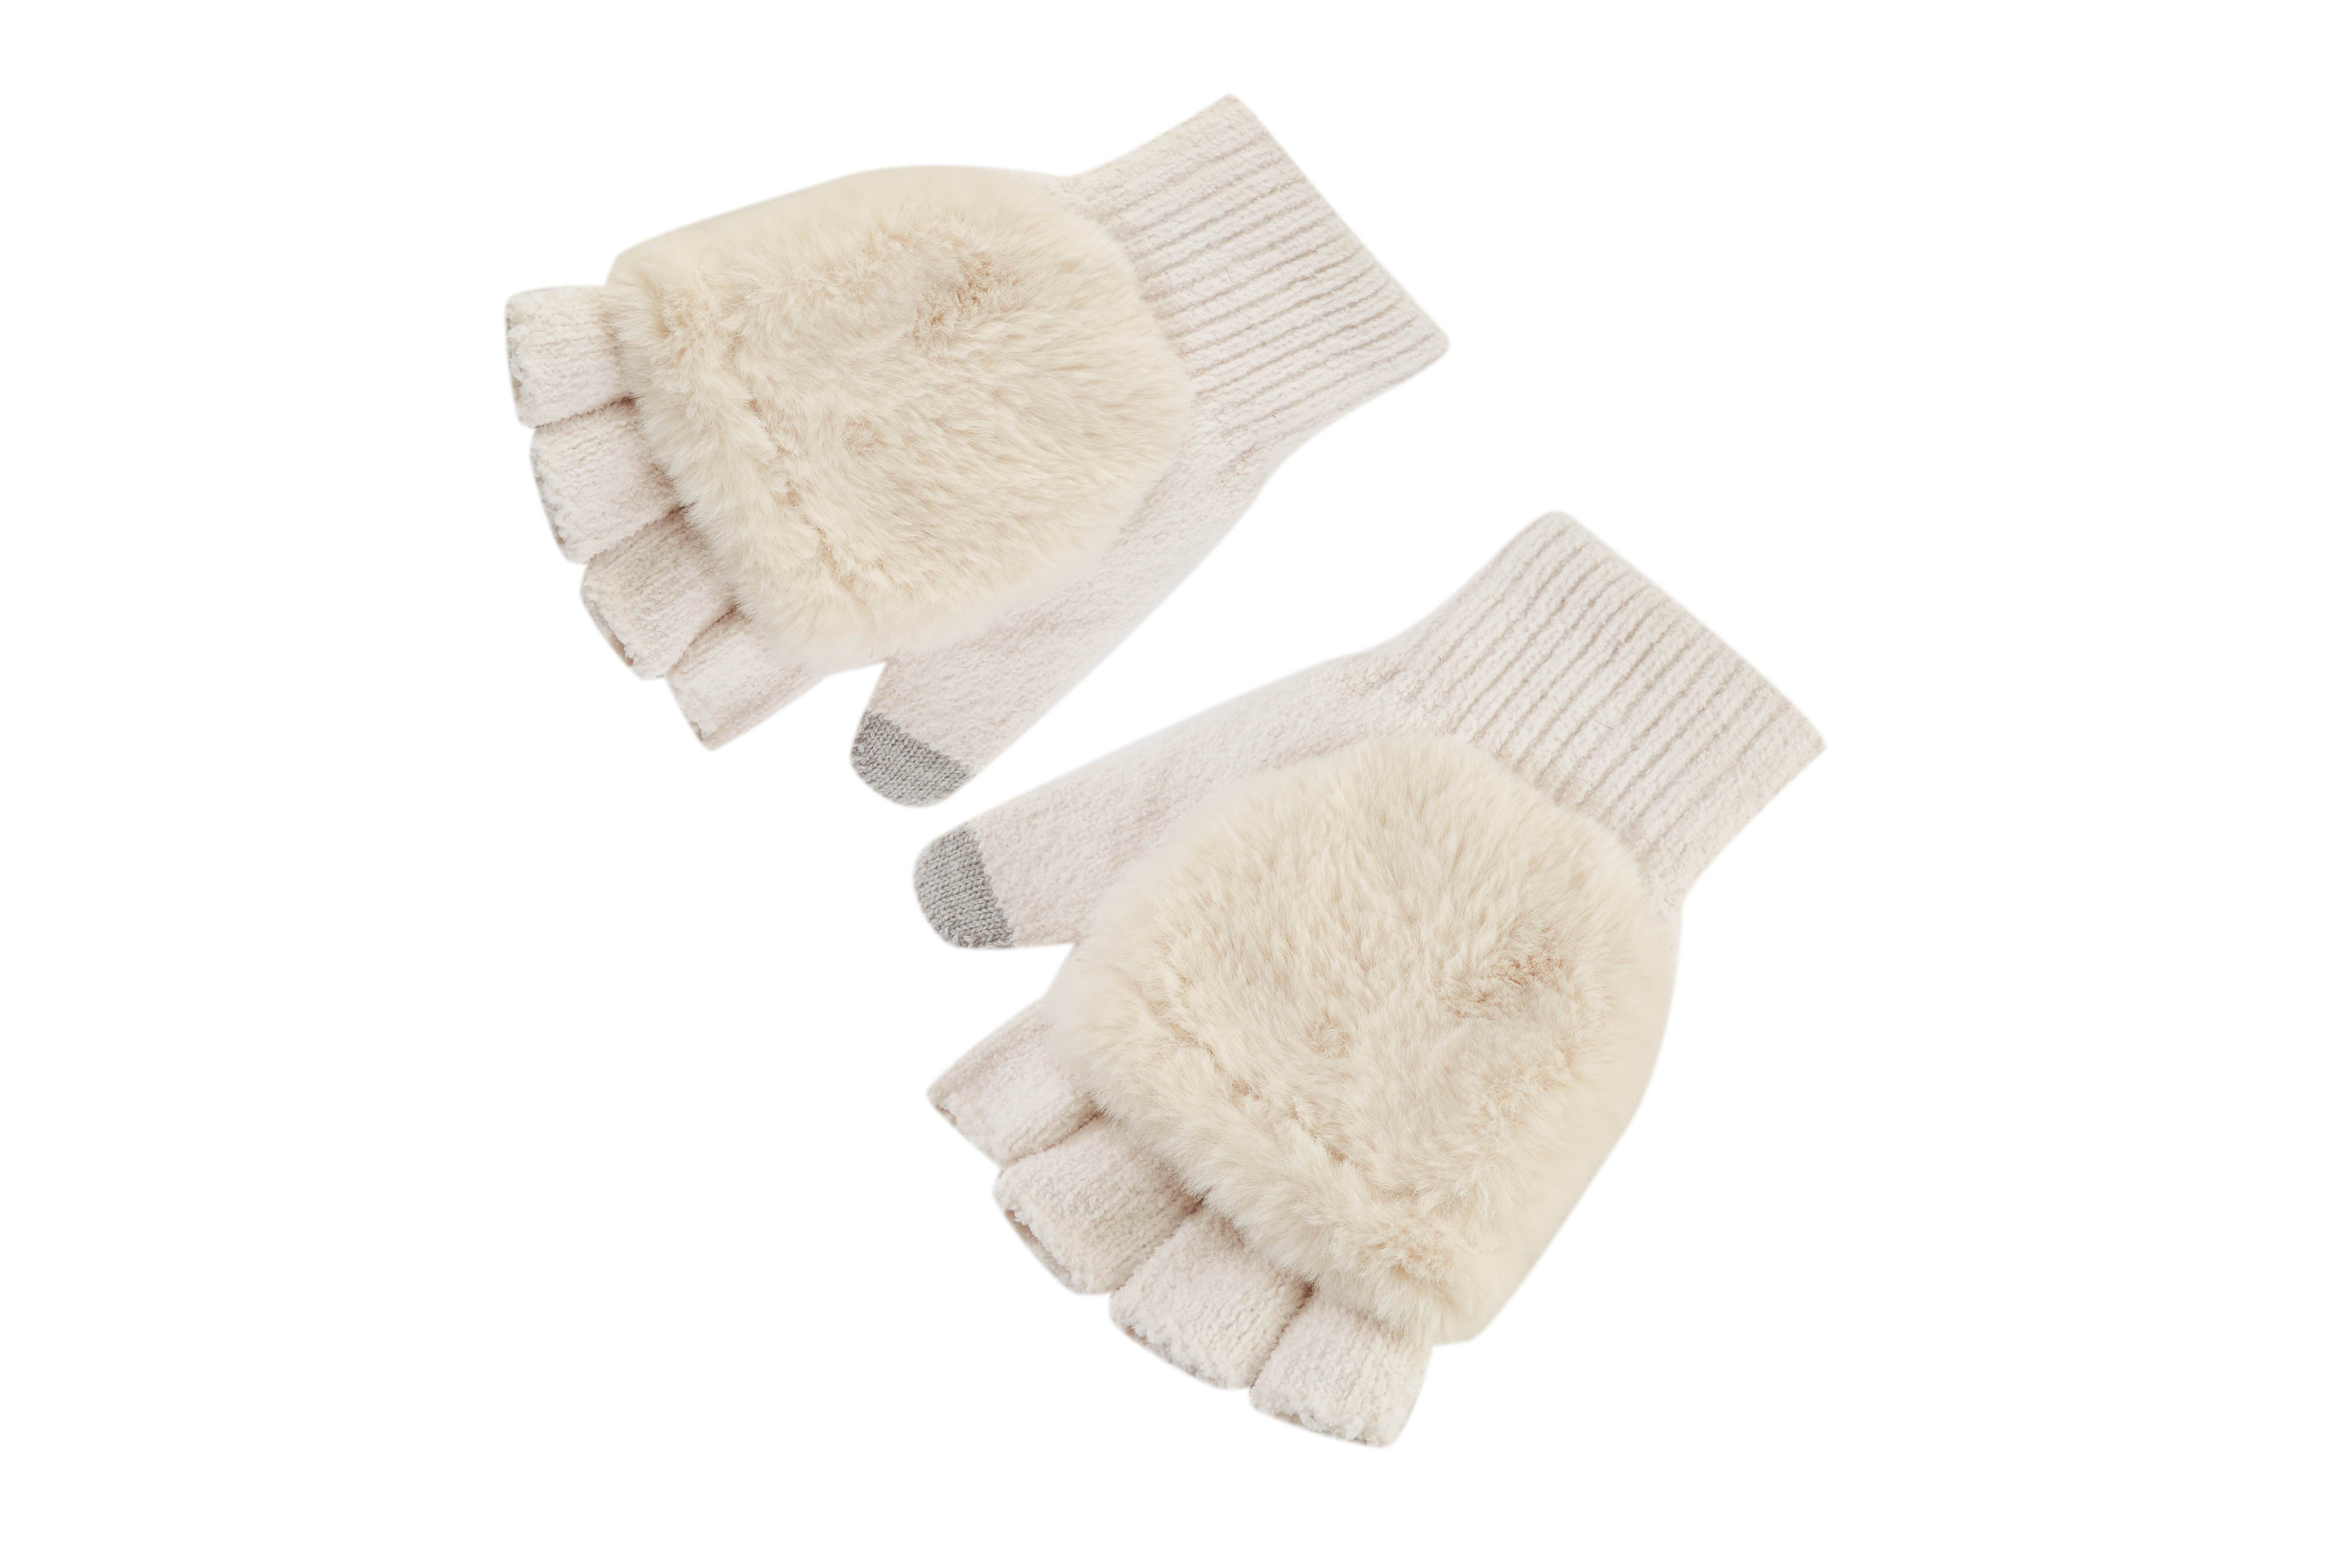 Girls' Winter Convertible Fingerless Gloves Warm Knit Gloves with Mitten Cover